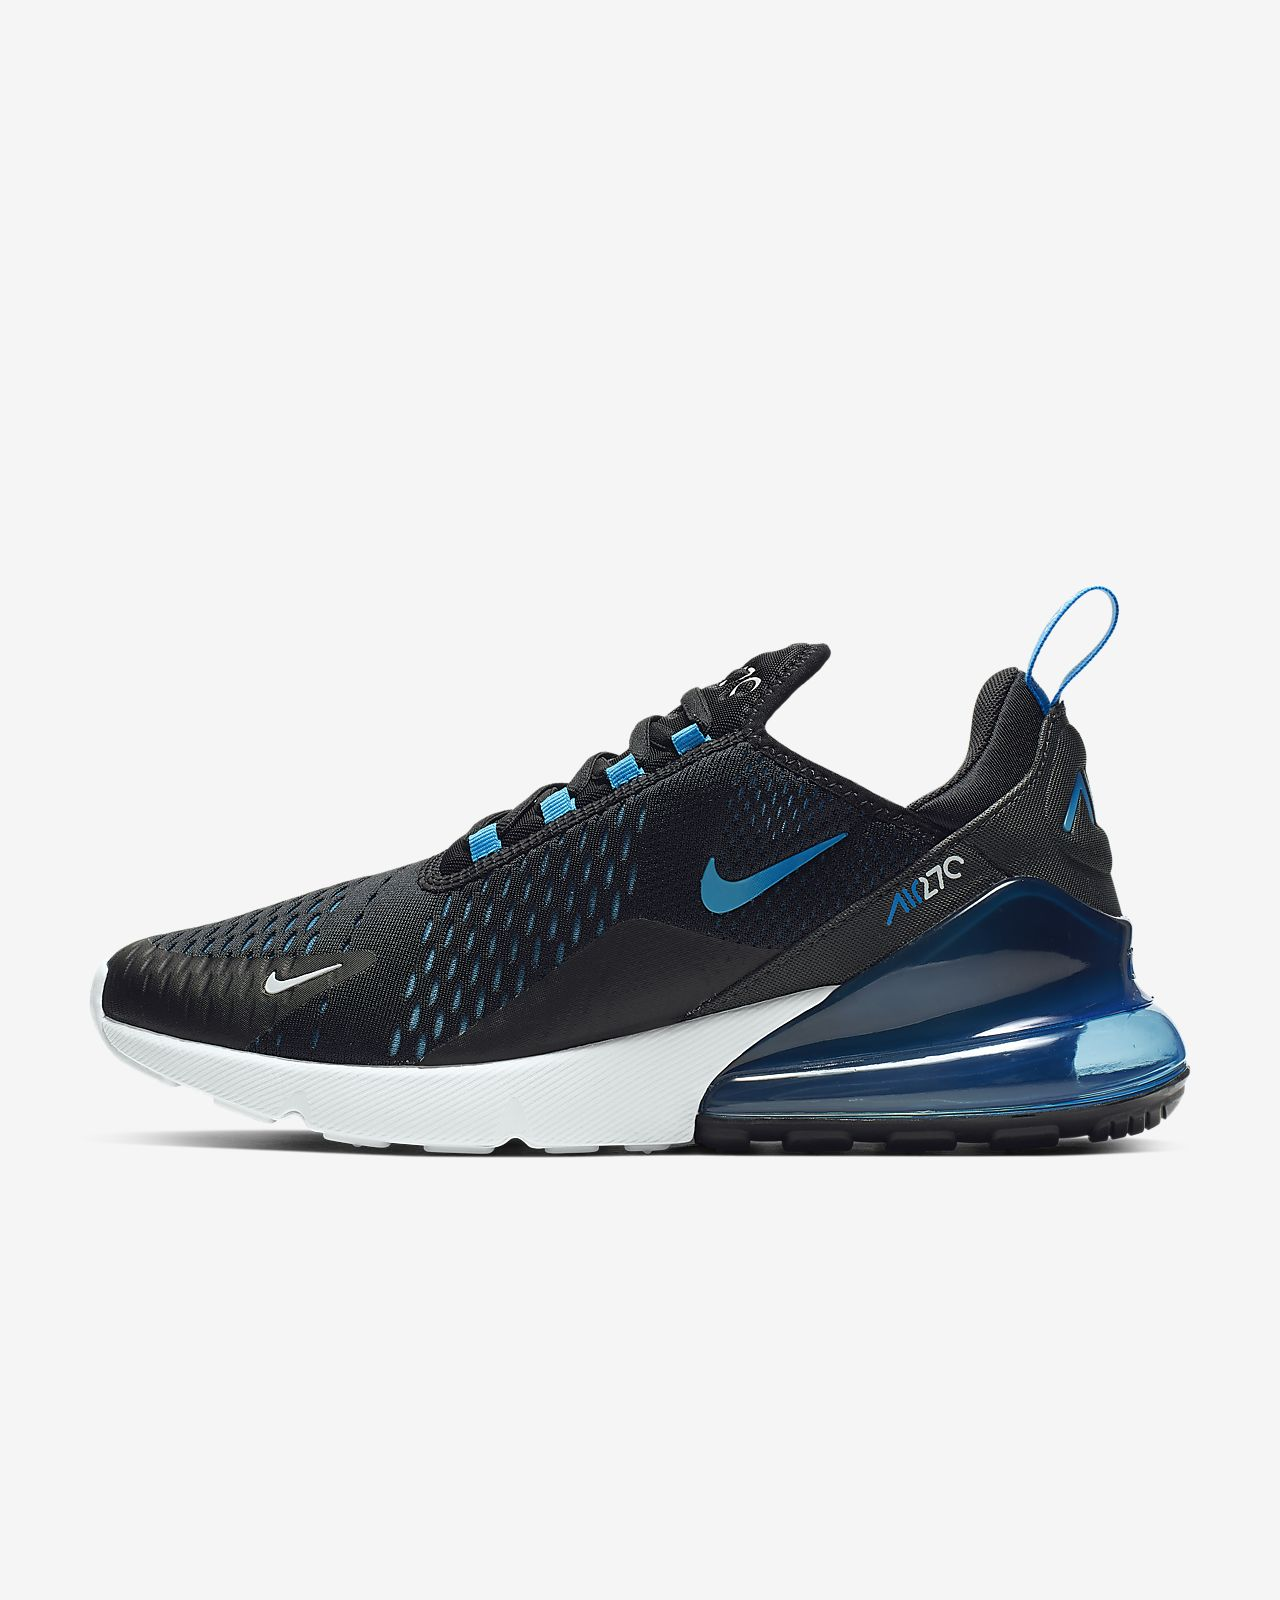 meet 5fc81 fe7cb Men s Shoe. Nike Air Max 270